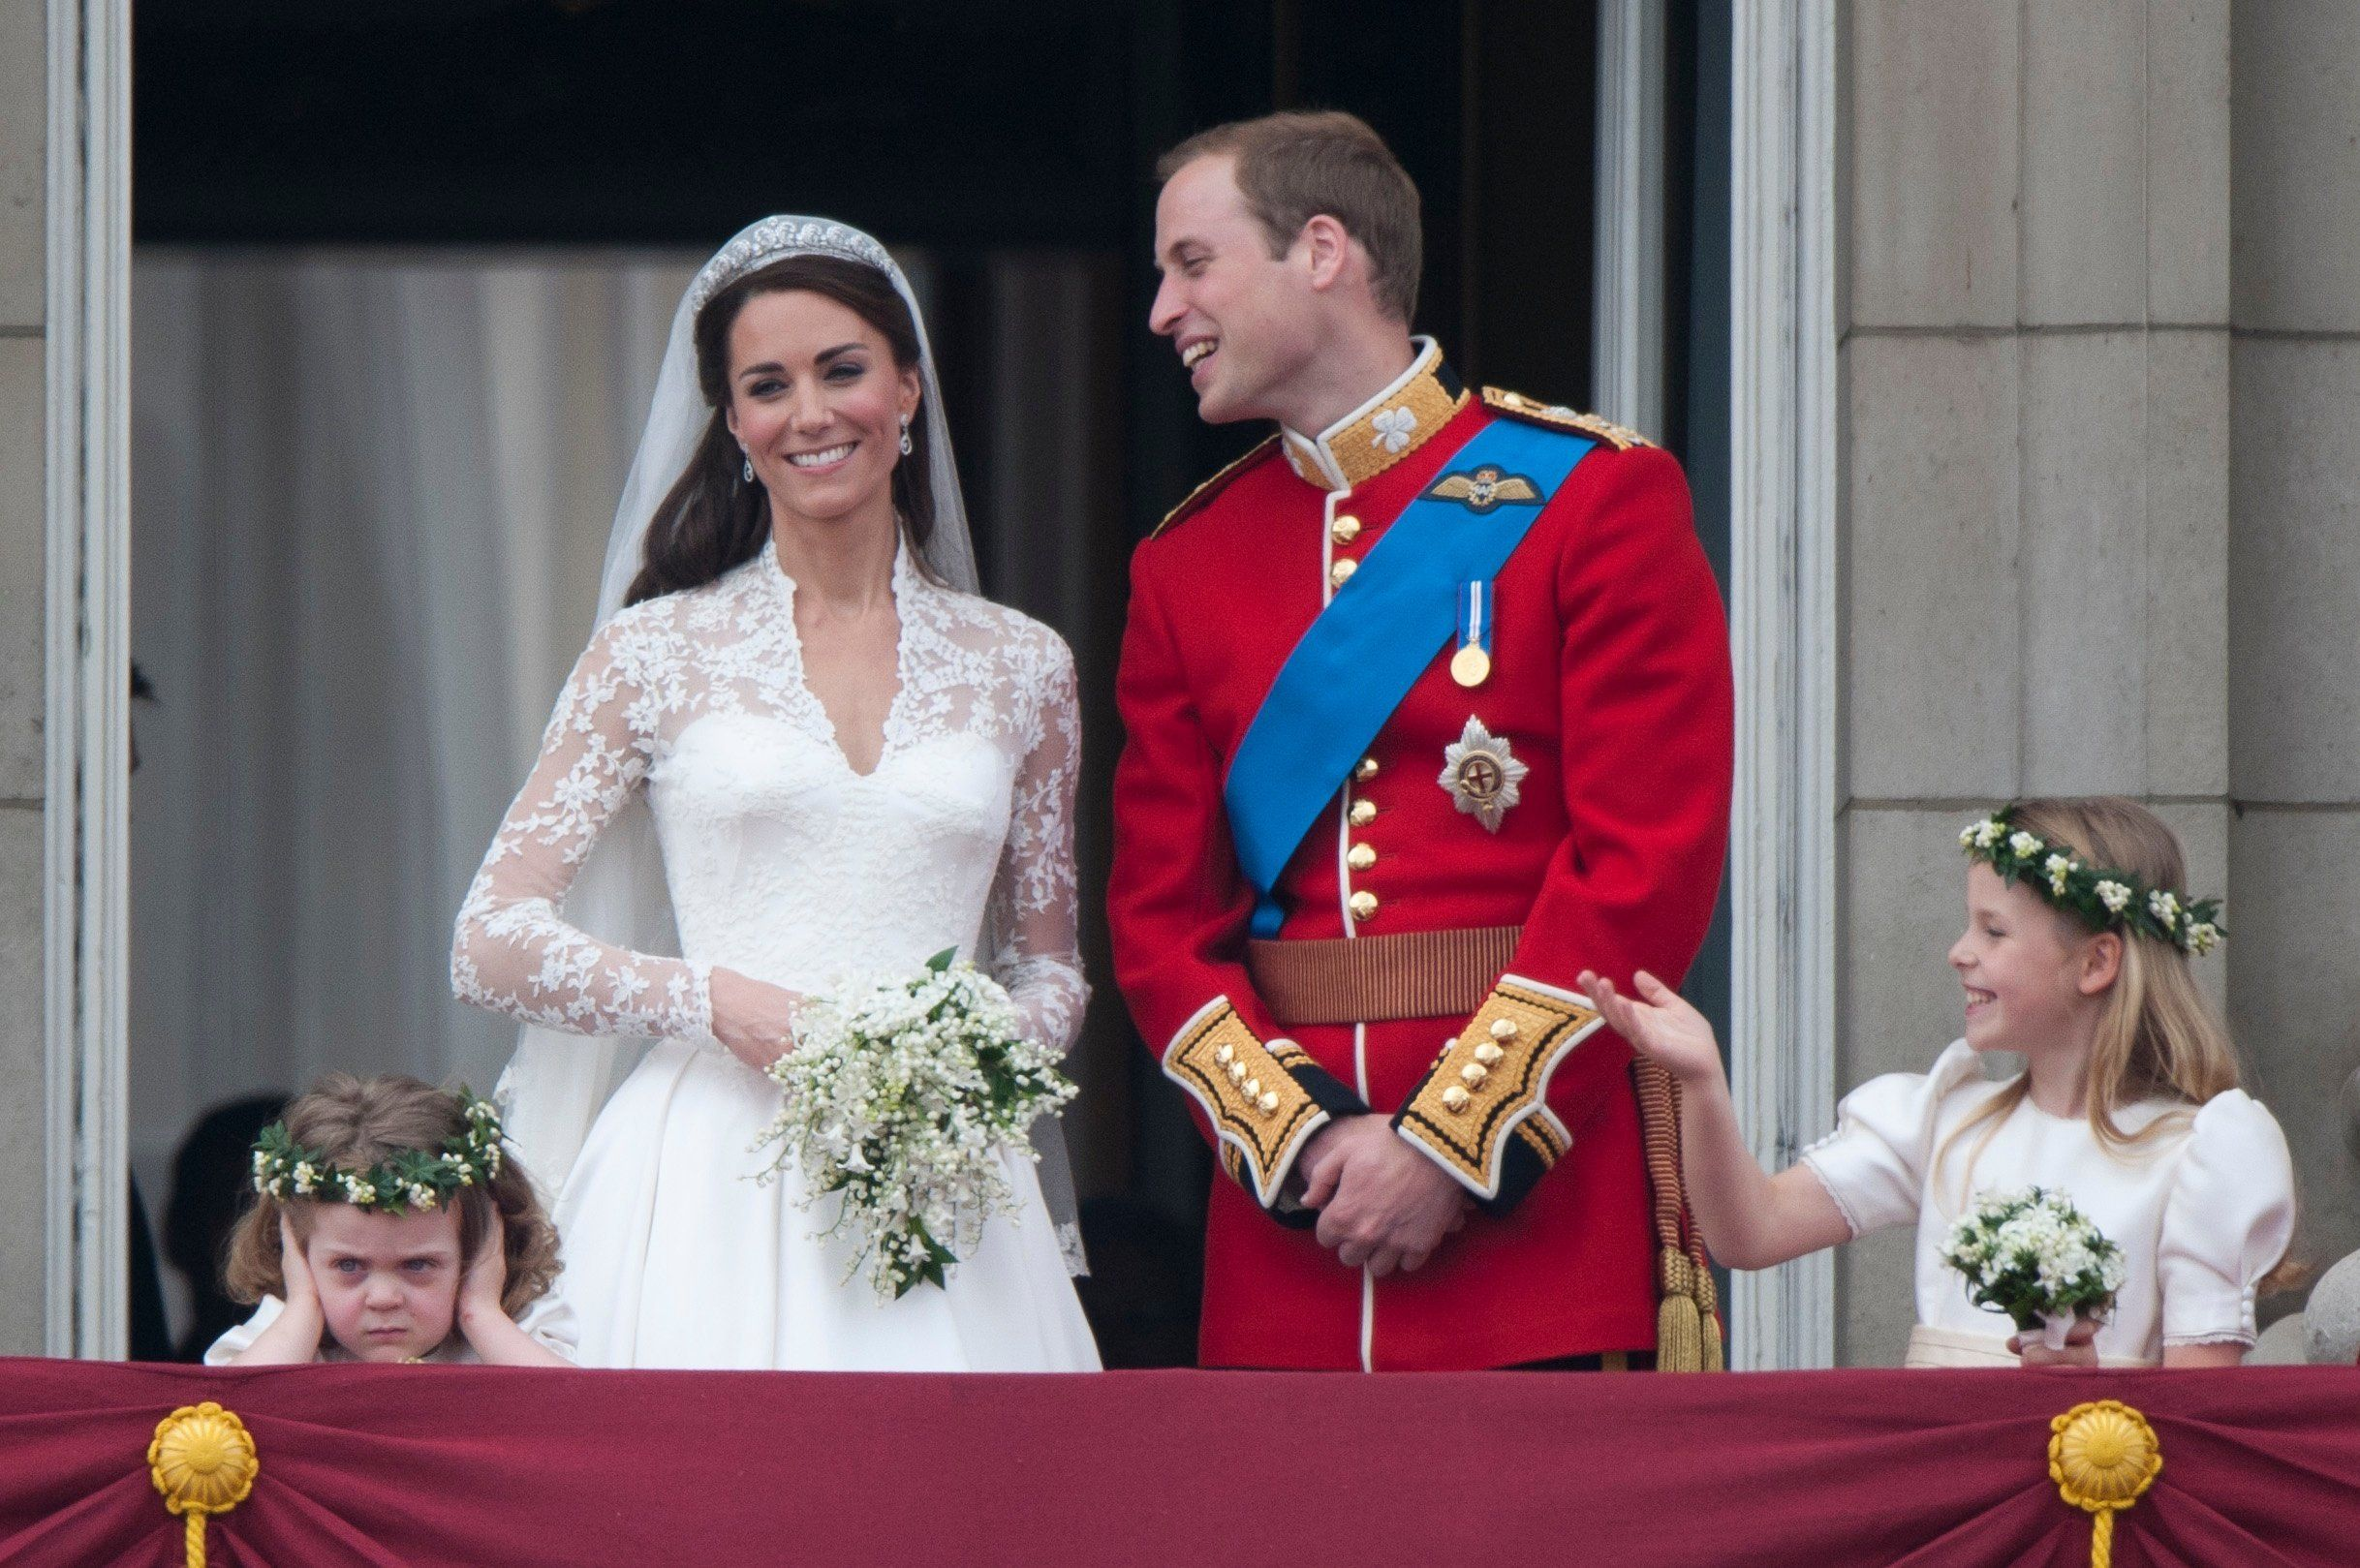 The Duke and Duchess of Cambridge at their 2011 wedding.